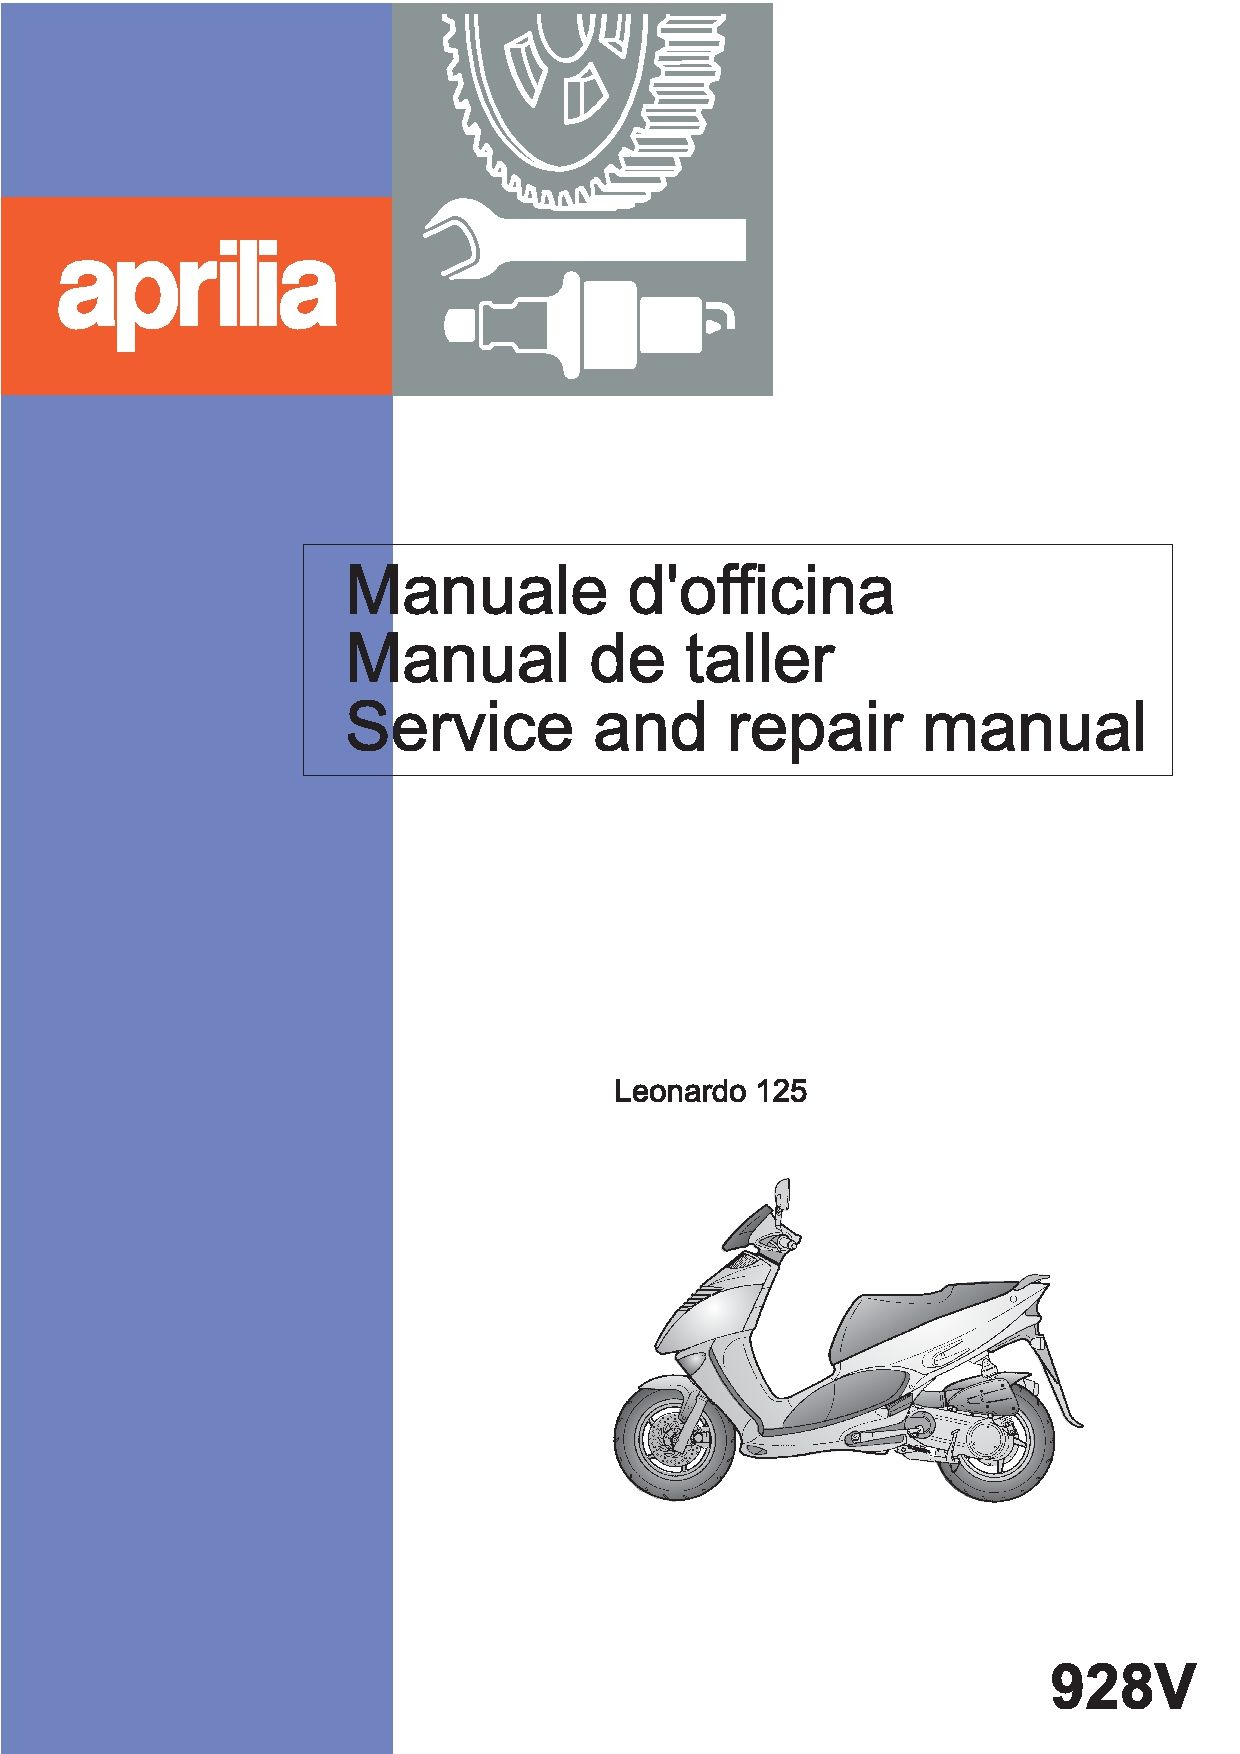 Aprilia Leonardo 125 1997 Repair Manual Pdf Download Service Manual Repair Manual Pdf Download Repair Manuals Aprilia Leonardo